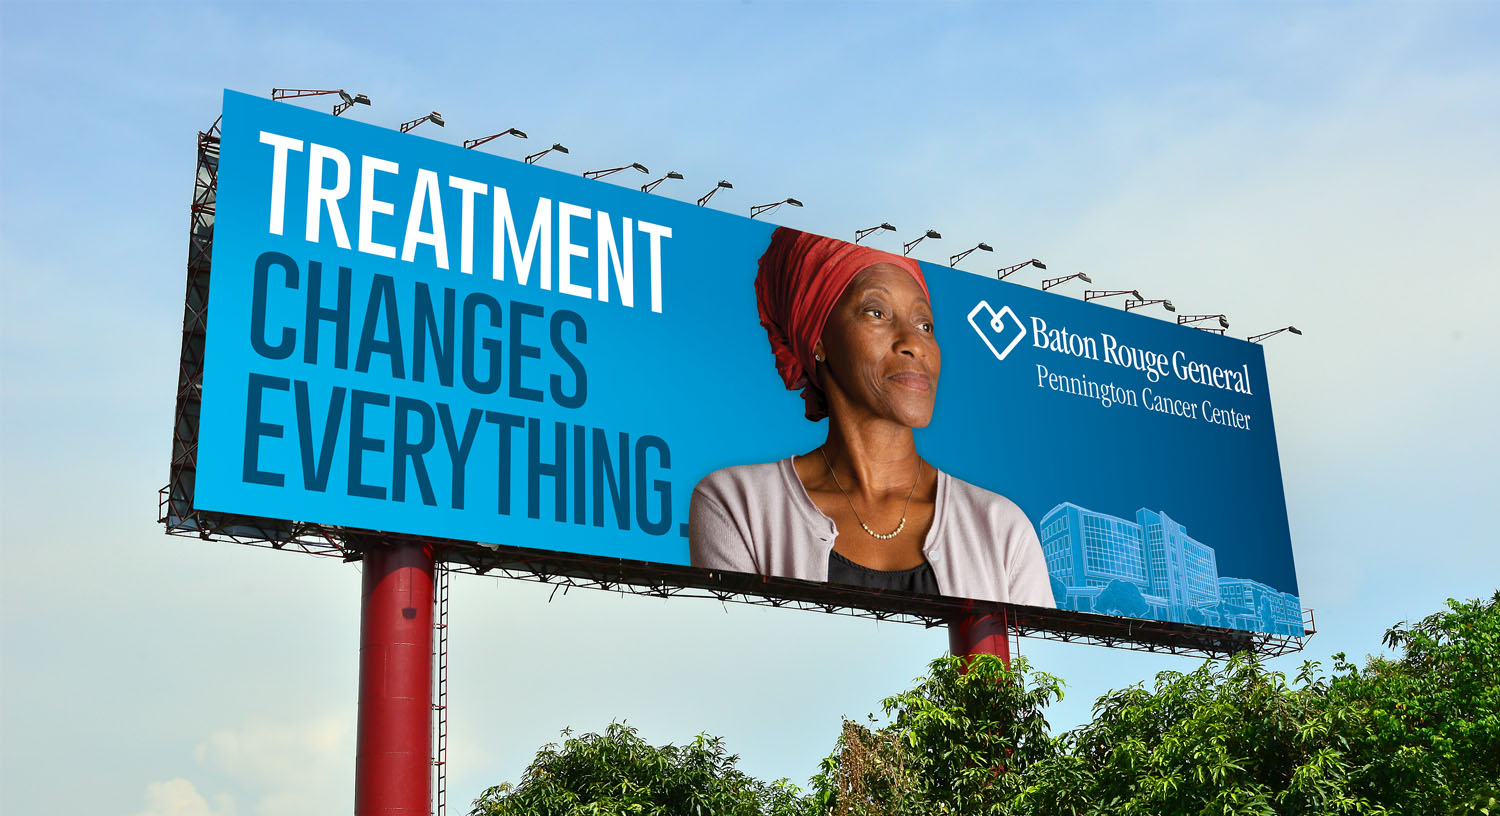 Baton Rouge General | Billboard Treatment